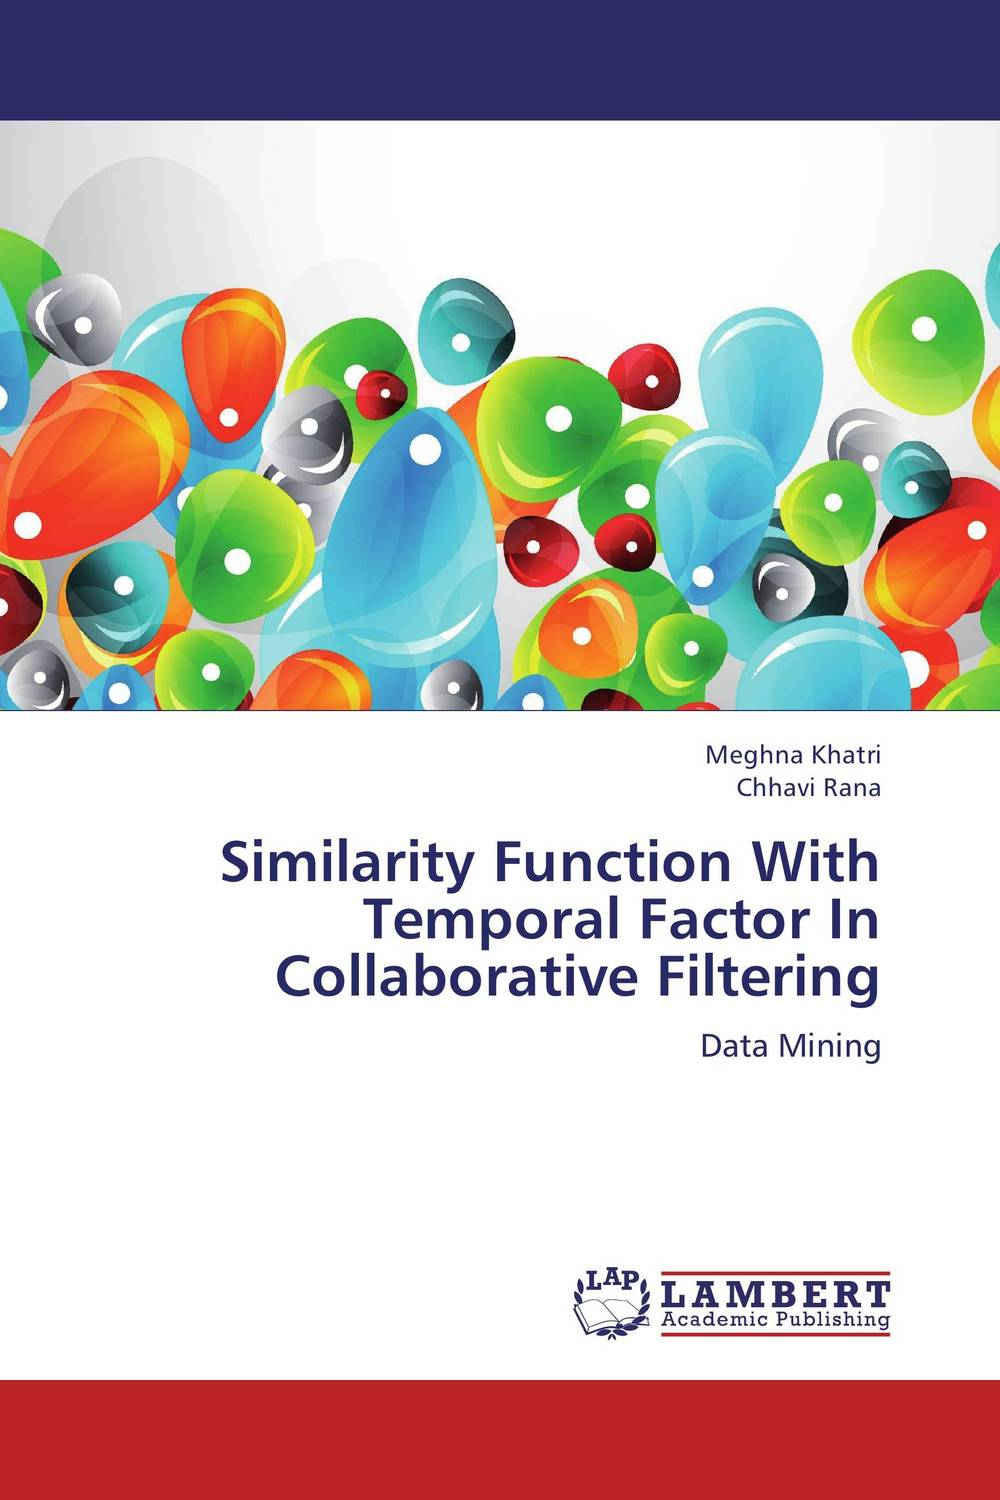 Similarity Function With Temporal Factor In Collaborative Filtering